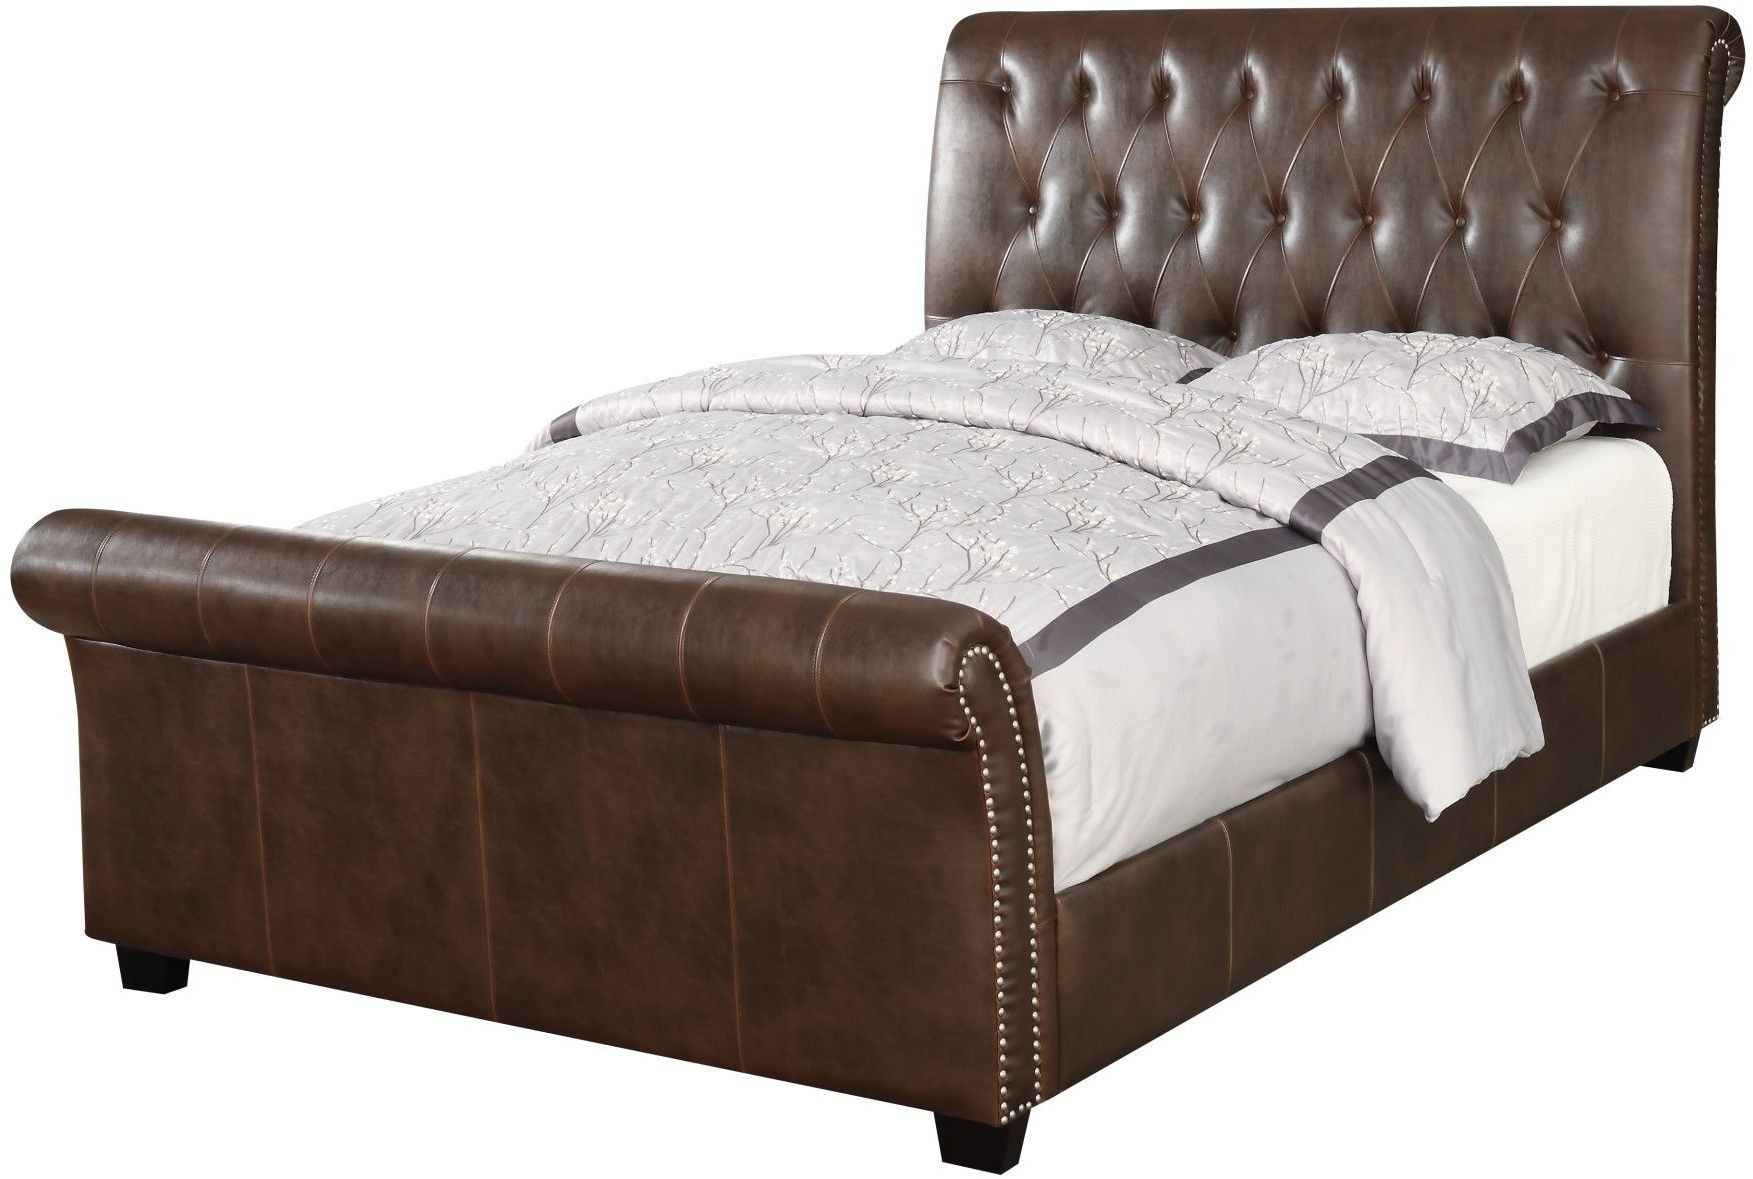 innsbruck ii brown king upholstered sleigh bed from emerald home coleman furniture. Black Bedroom Furniture Sets. Home Design Ideas